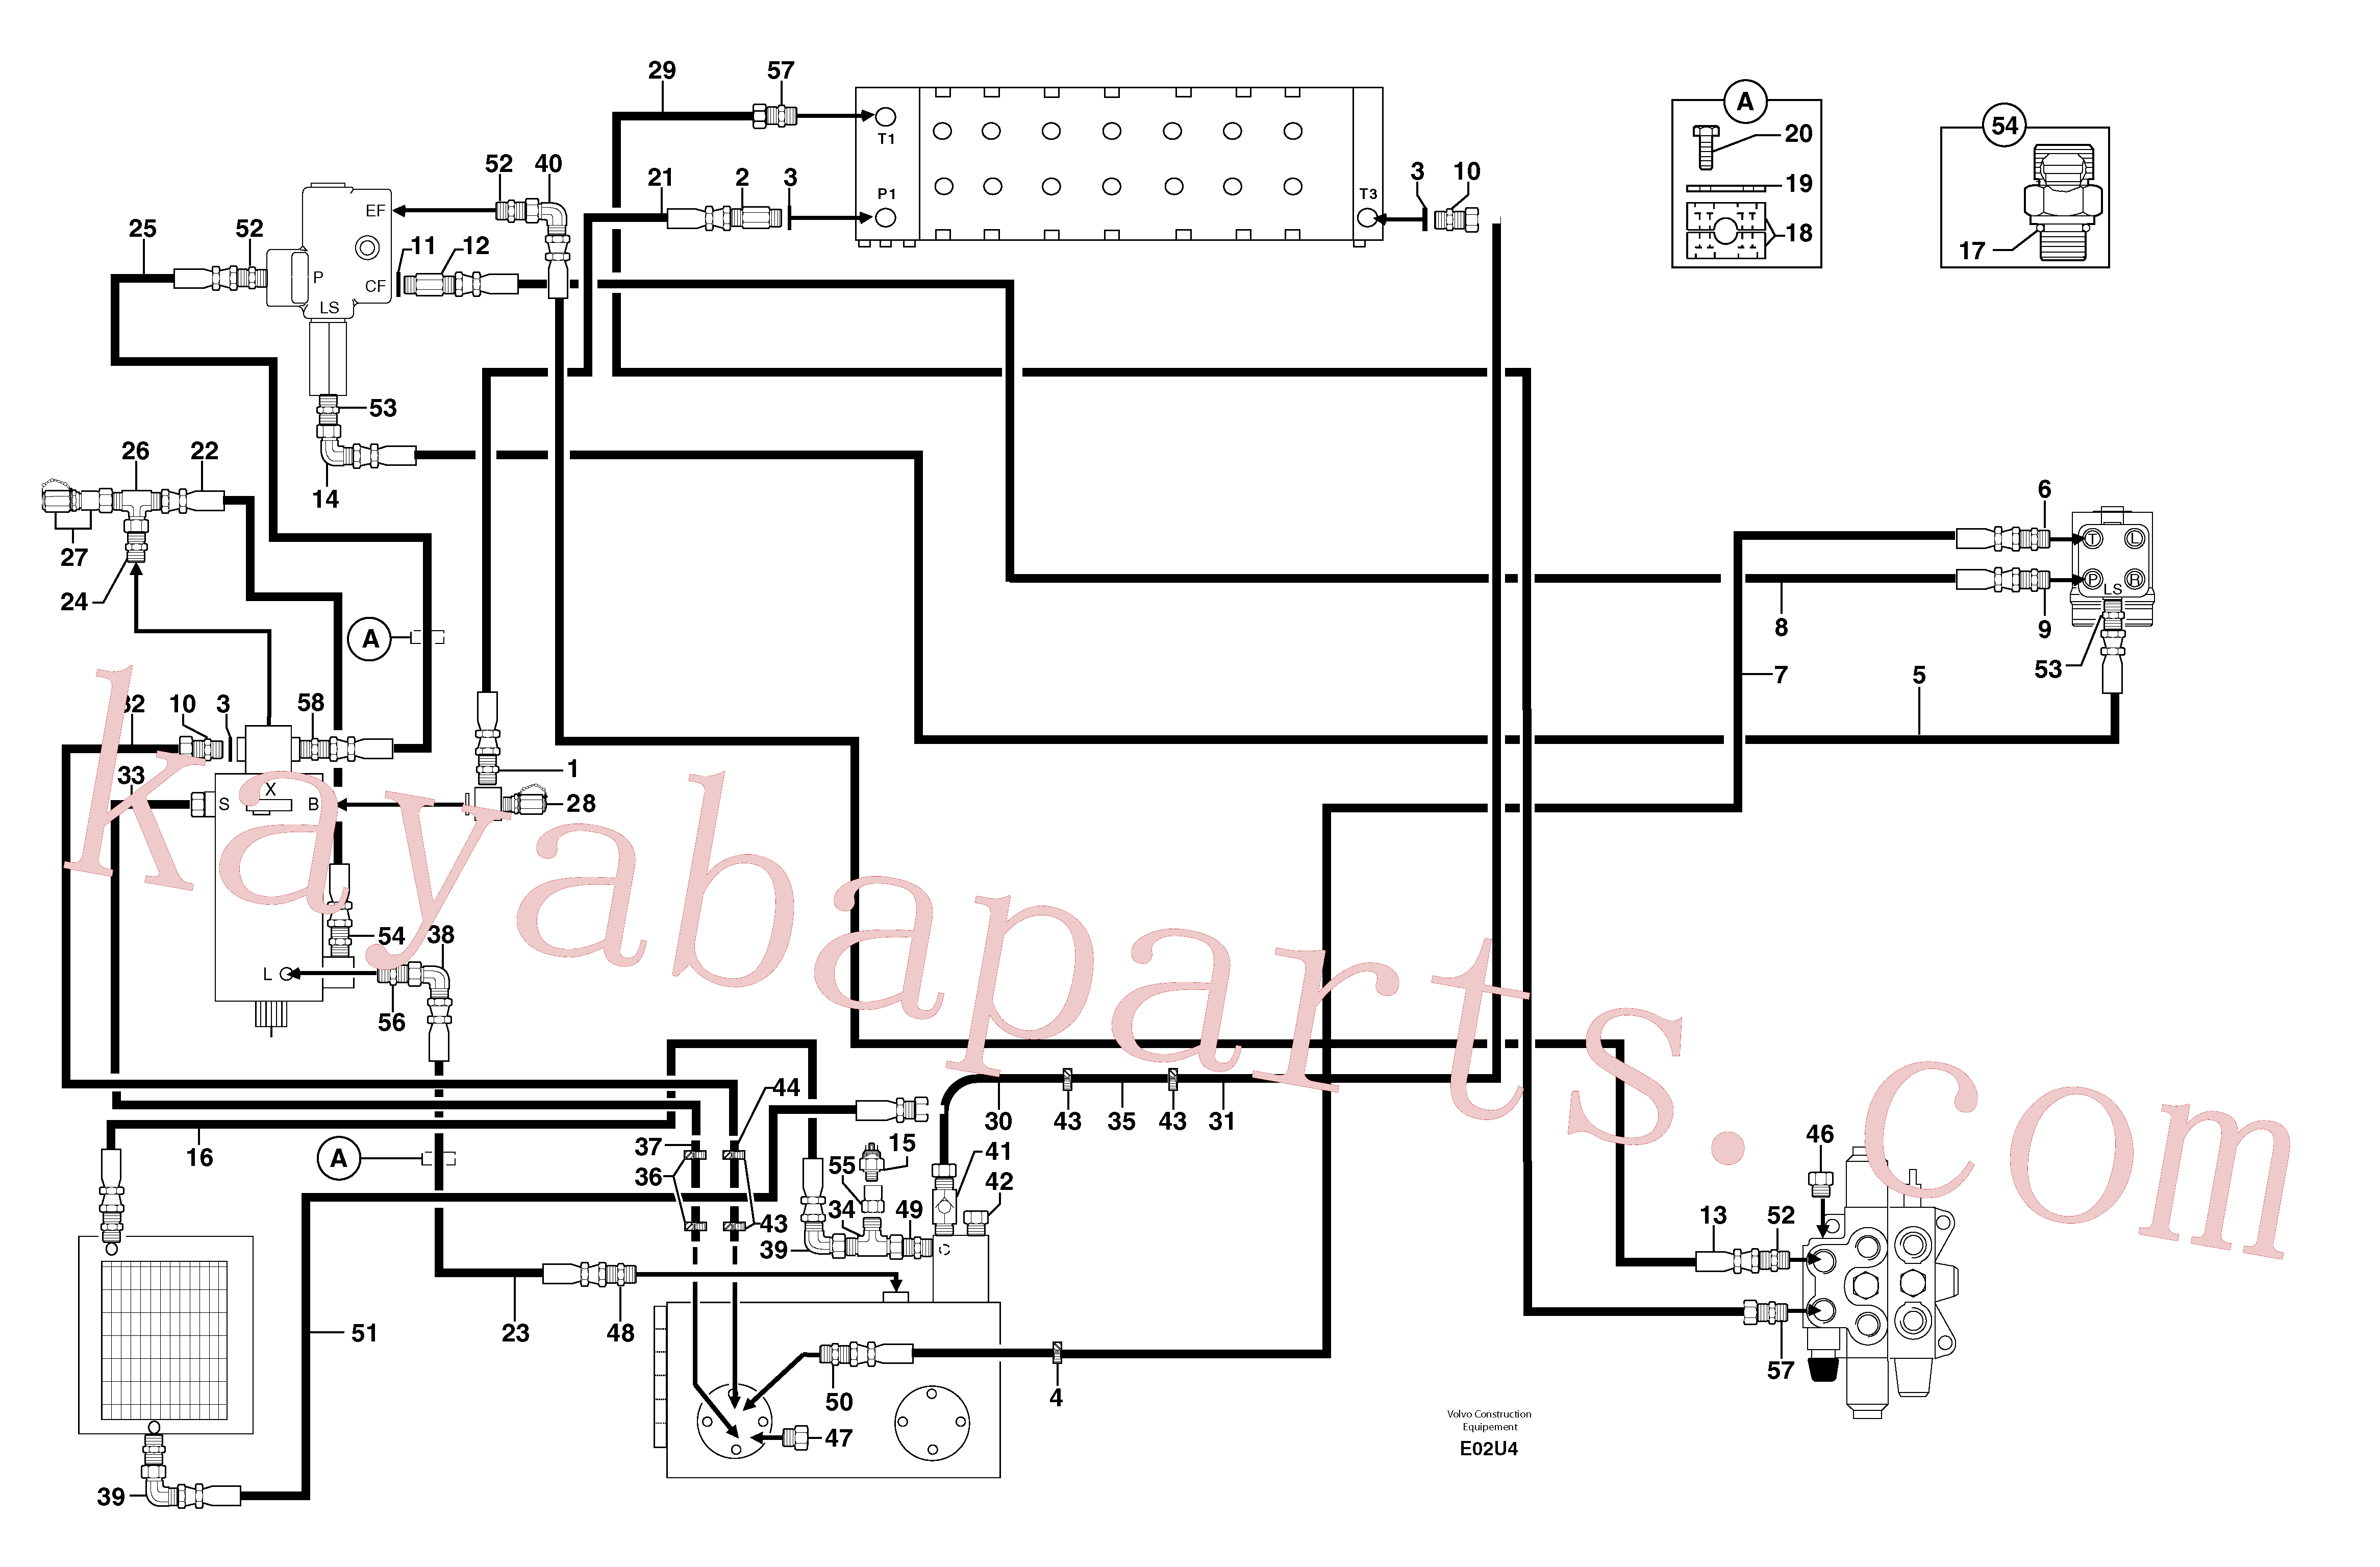 PJ6010154 for Volvo Attachments supply and return circuit(E02U4 assembly)